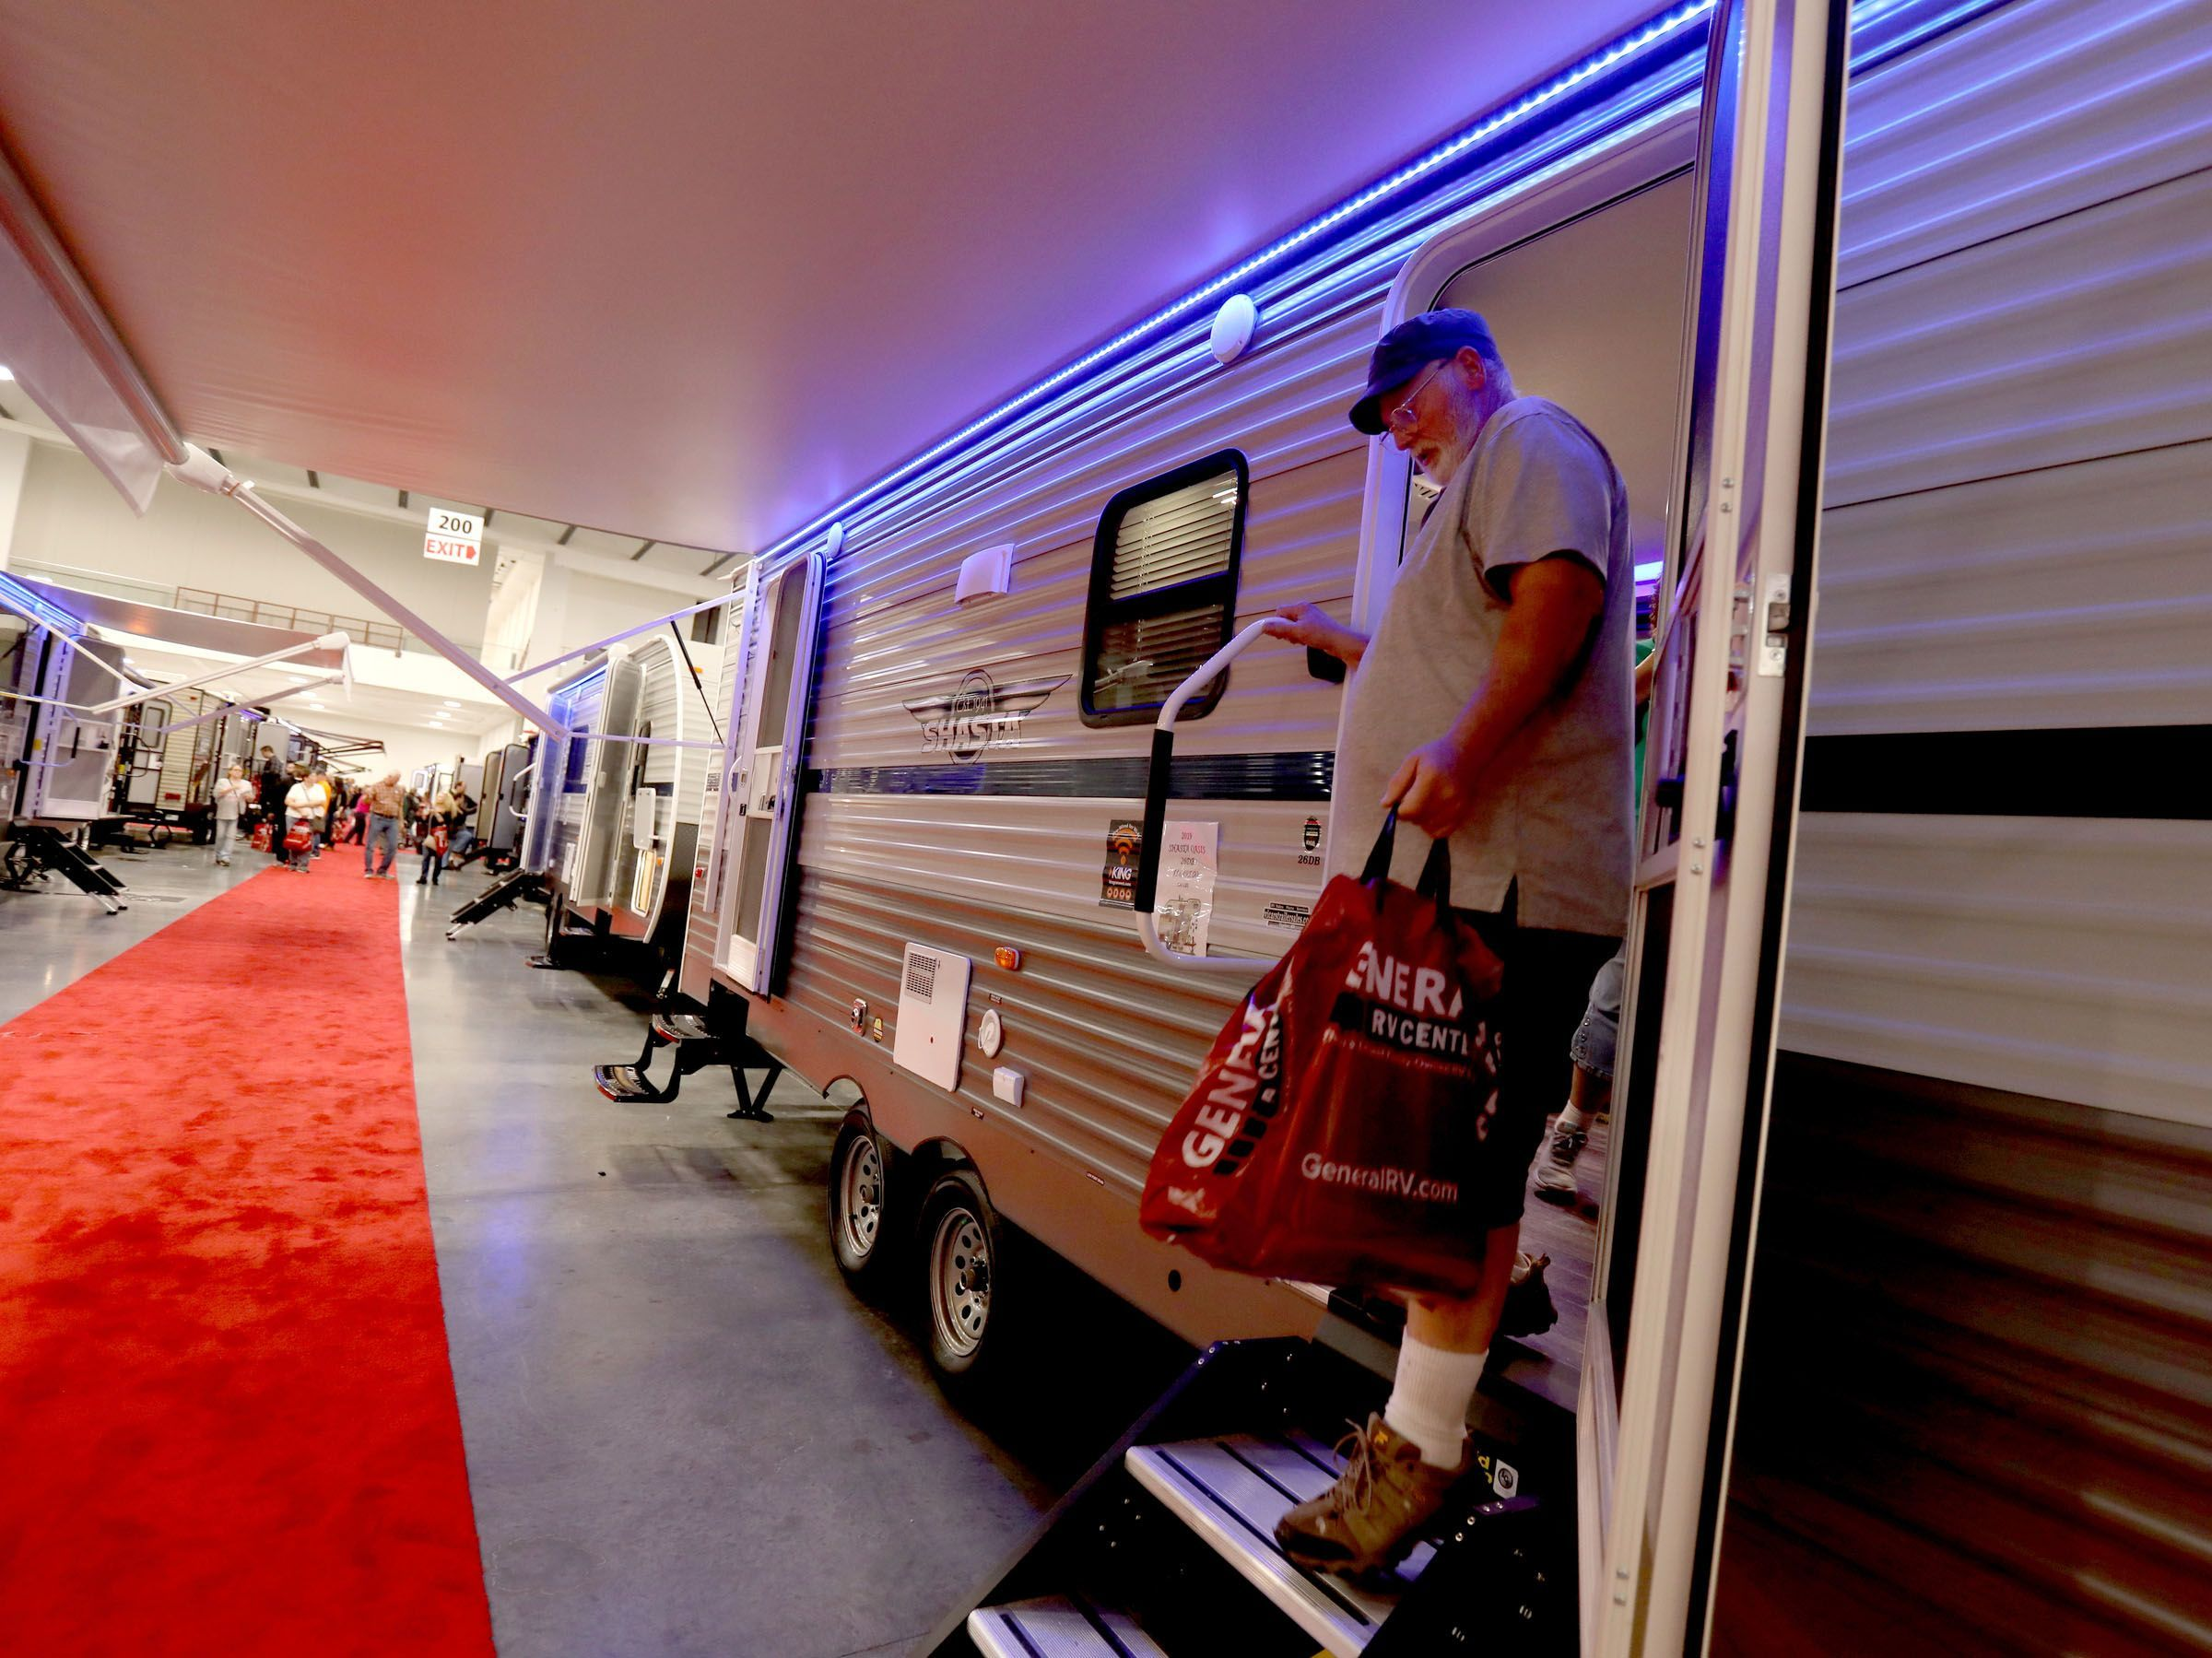 About 400 RVs will be on display this weekend in Novi.